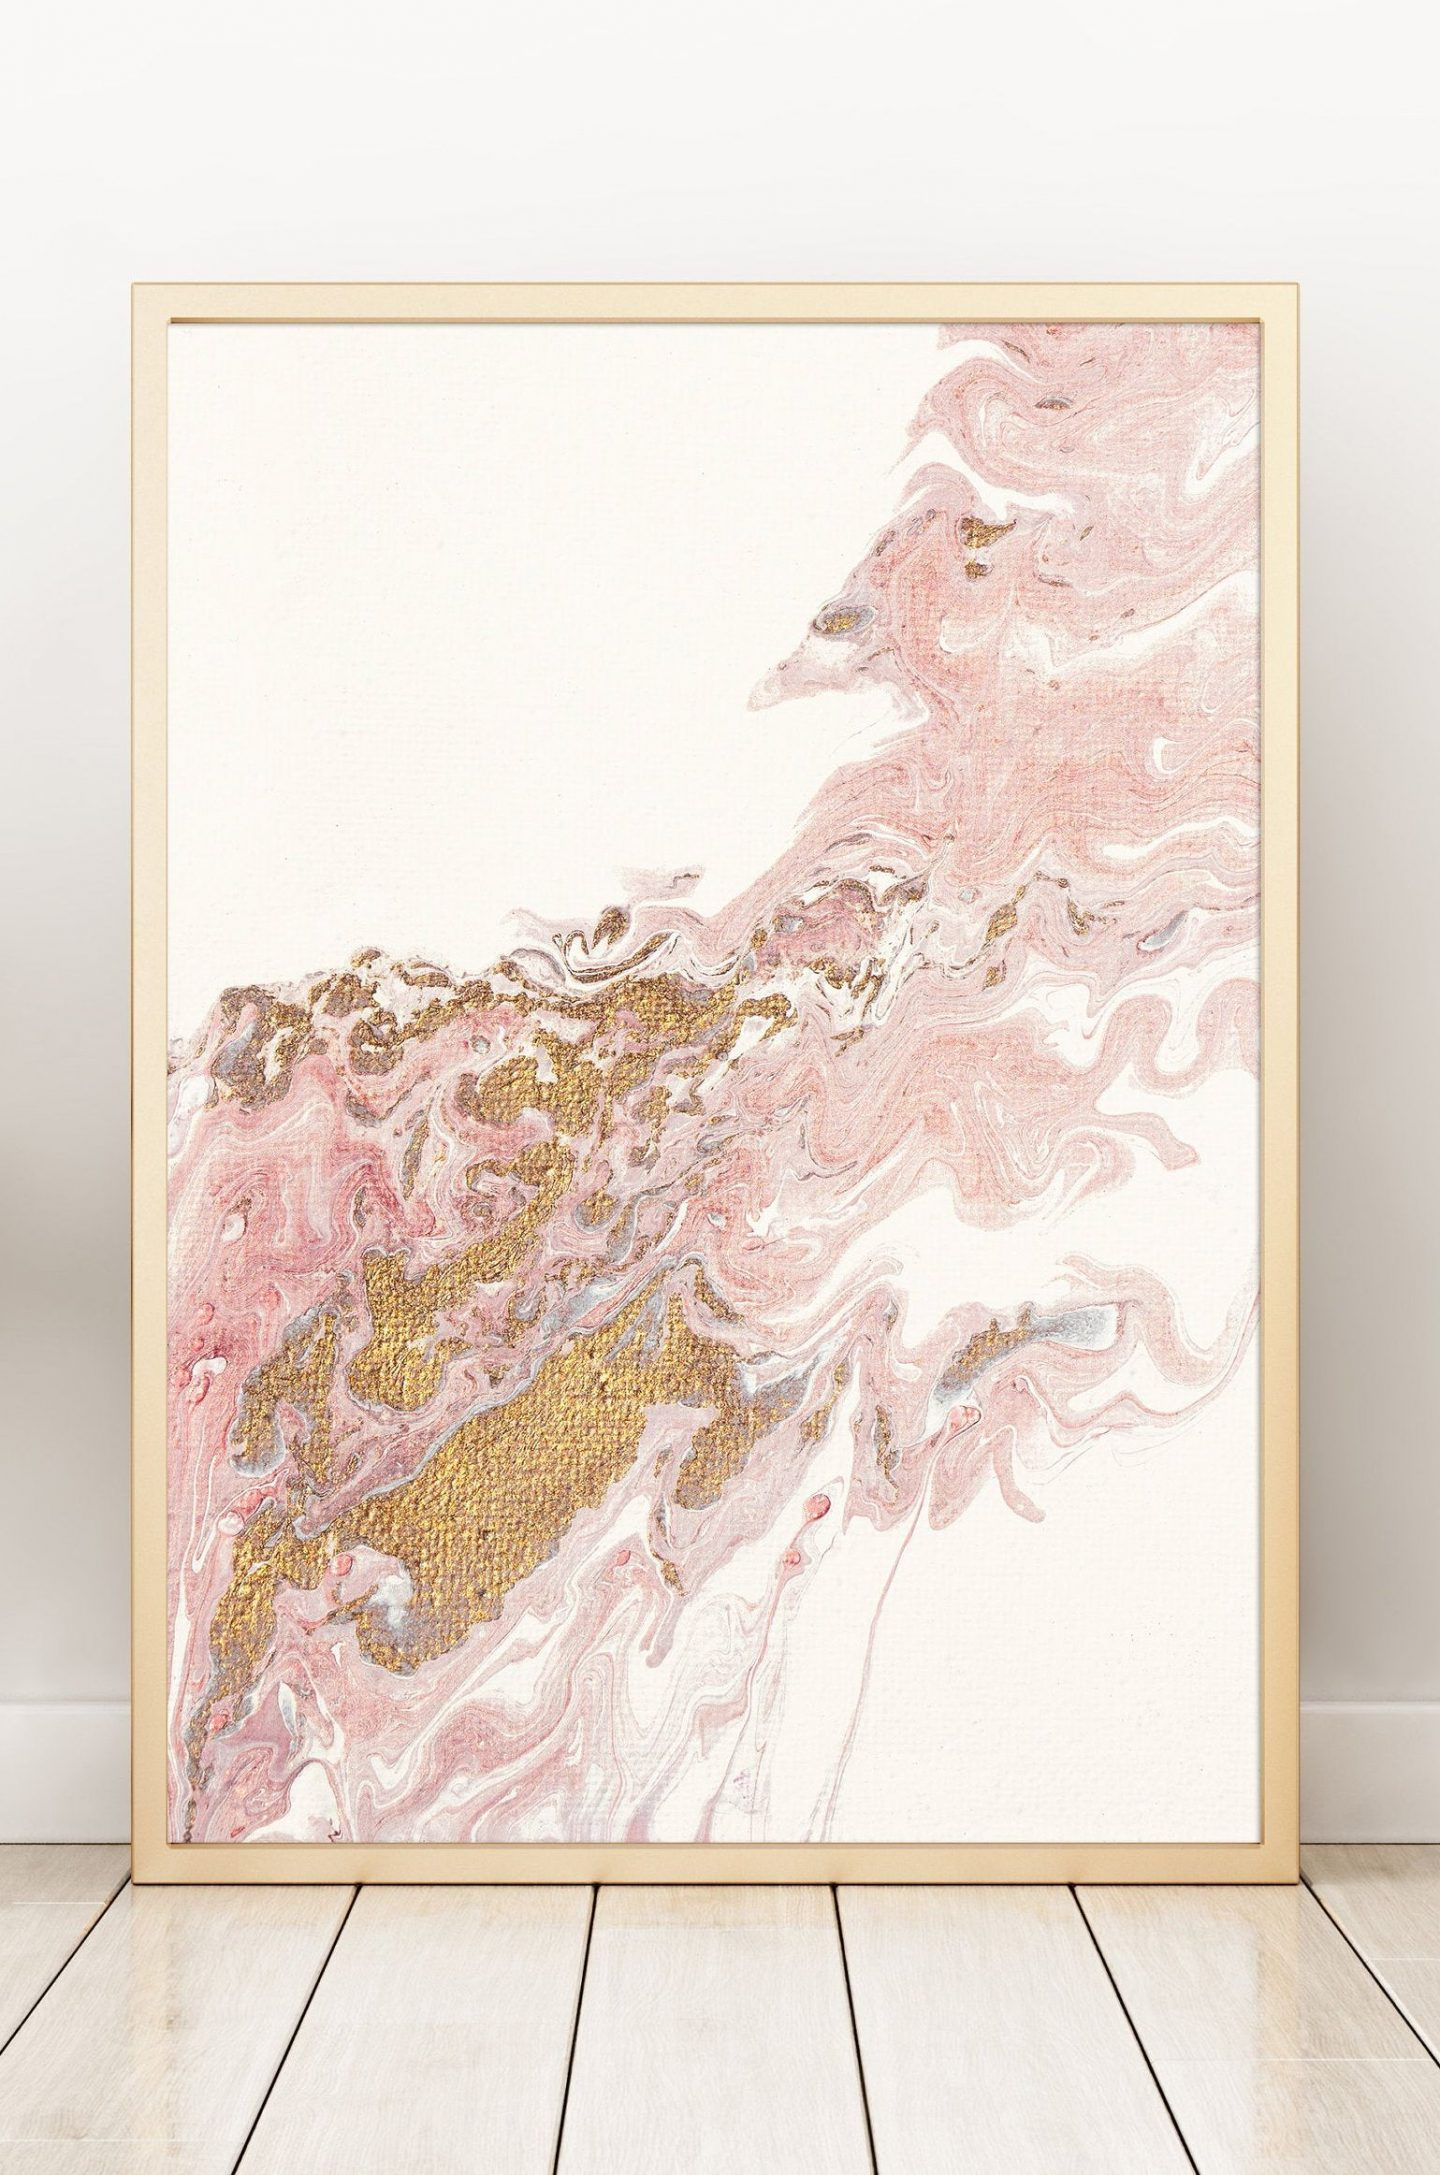 Abstract wall decoration in pink and gold foil